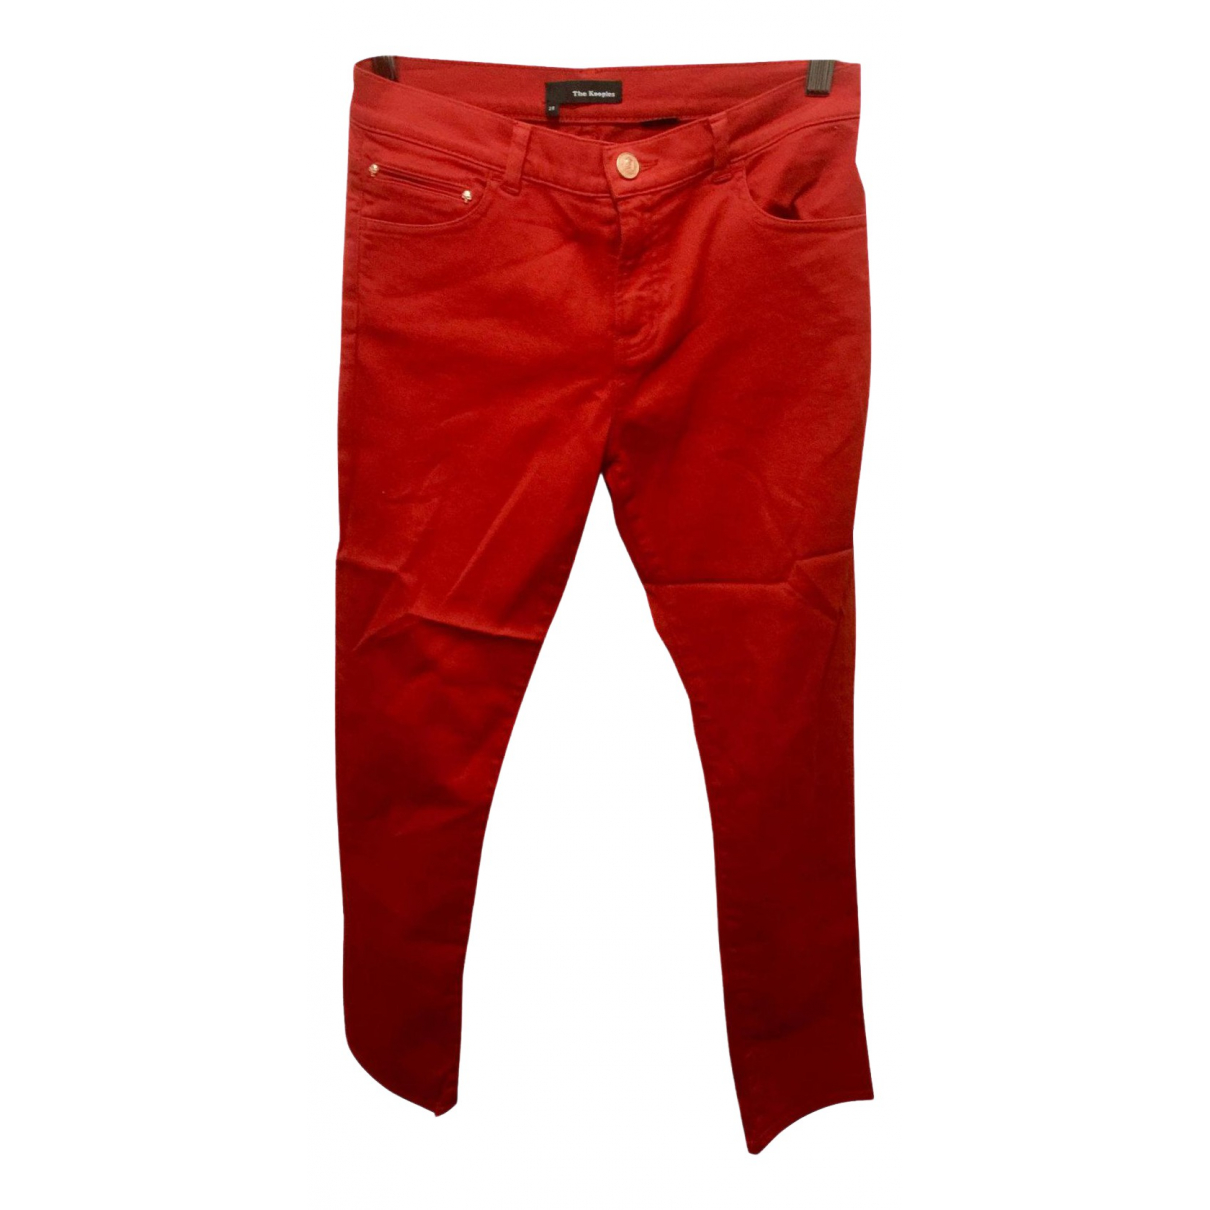 The Kooples Spring Summer 2020 Red Cotton - elasthane Jeans for Women 28 US